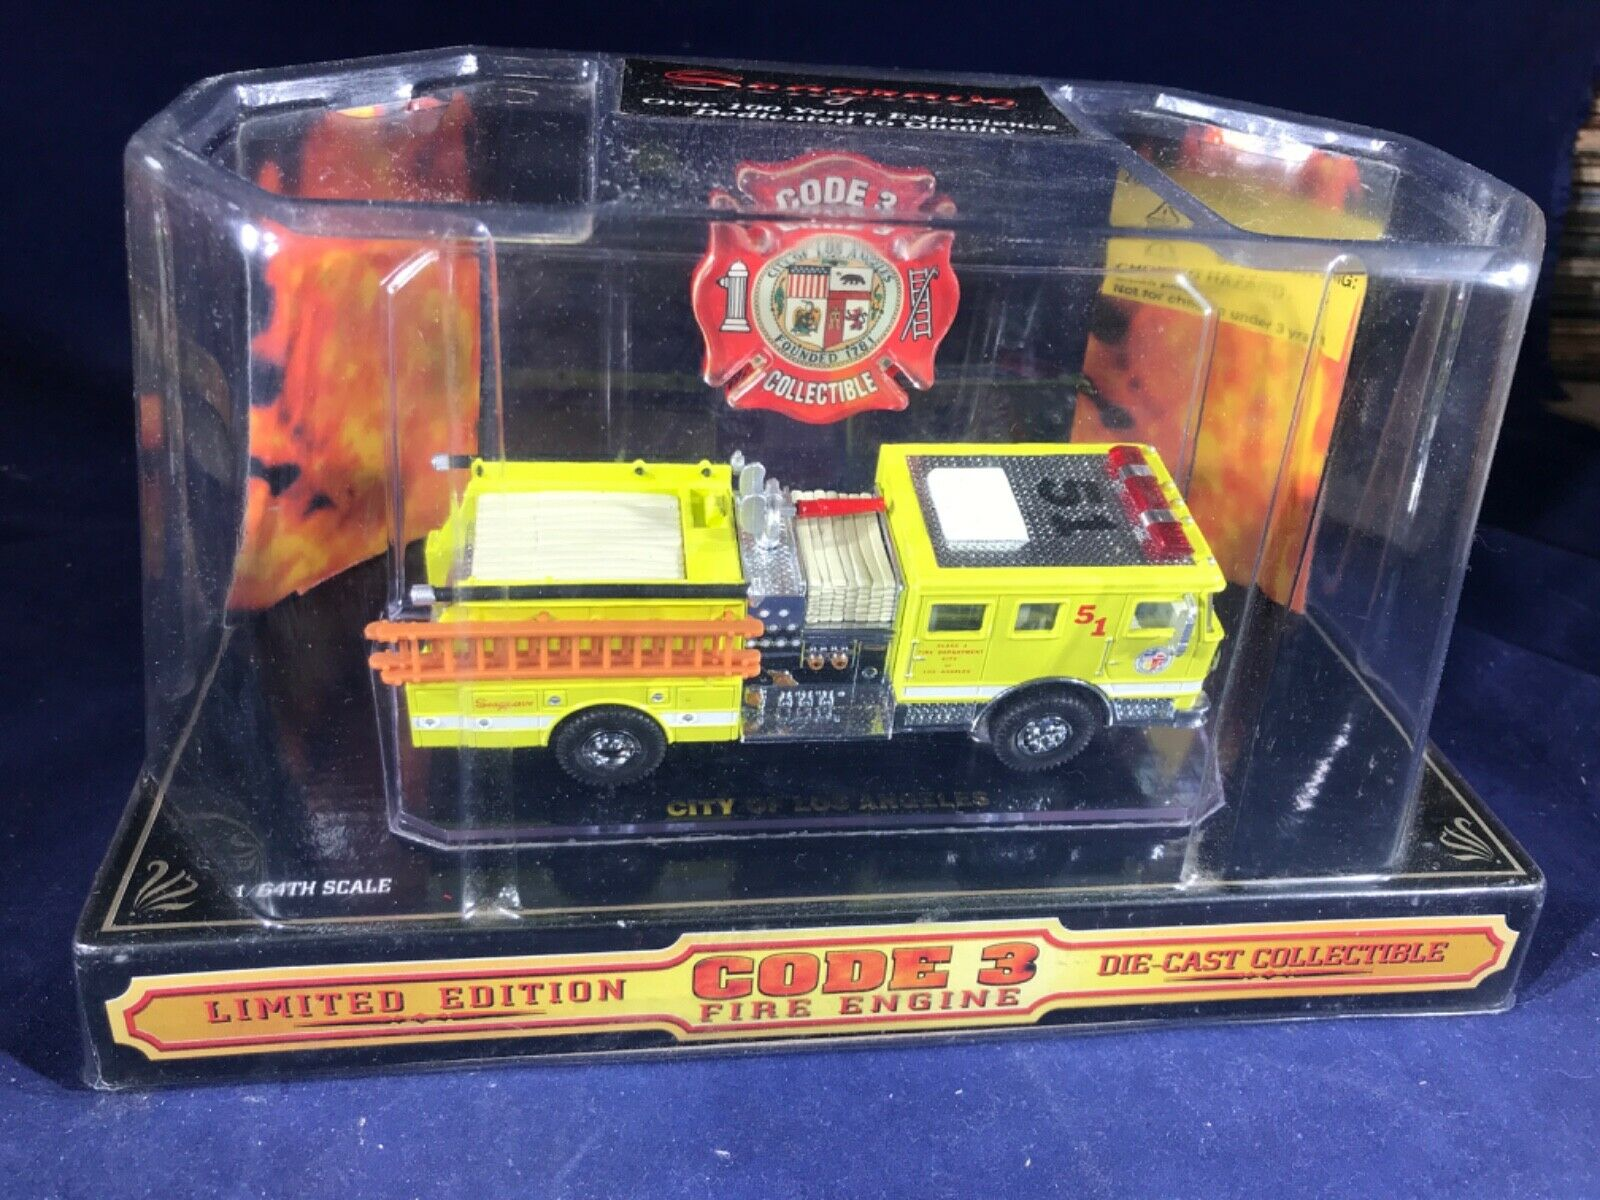 P-37 CODE 3 1 64 SCALE DIE CAST FIRE ENGINE - ENGINE 51 CITY OF LOS ANGELES FIRE